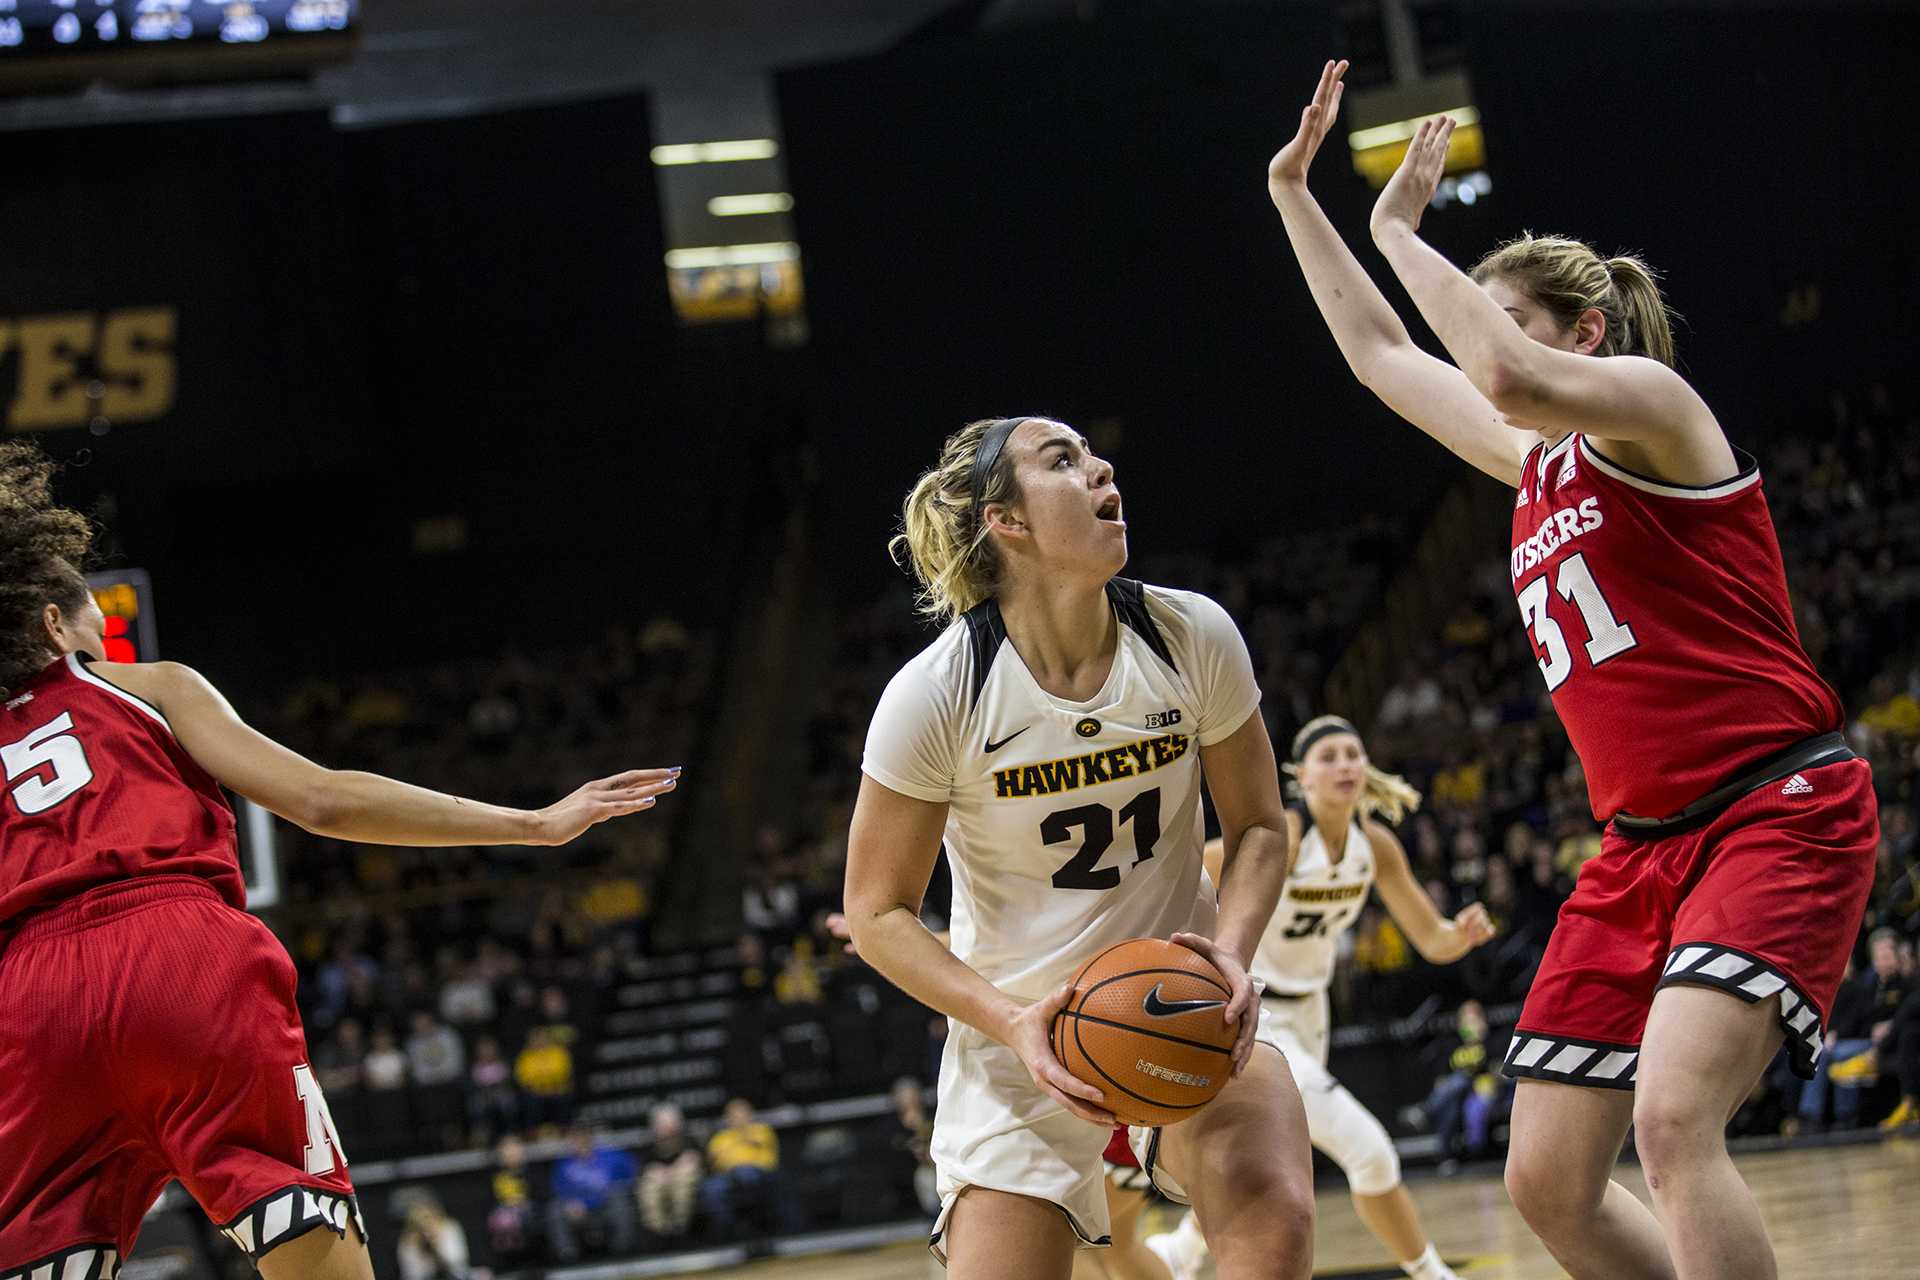 during the NCAA women's basketball game at Carver-Hawkeye Arena on Sunday, Jan. 28, 2018. The Cornhuskers defeated the Hawkeyes 92-74. Junior, Hannah Stewart goes up for a basket in the paint. (Chris Kalous/The Daily Iowan)